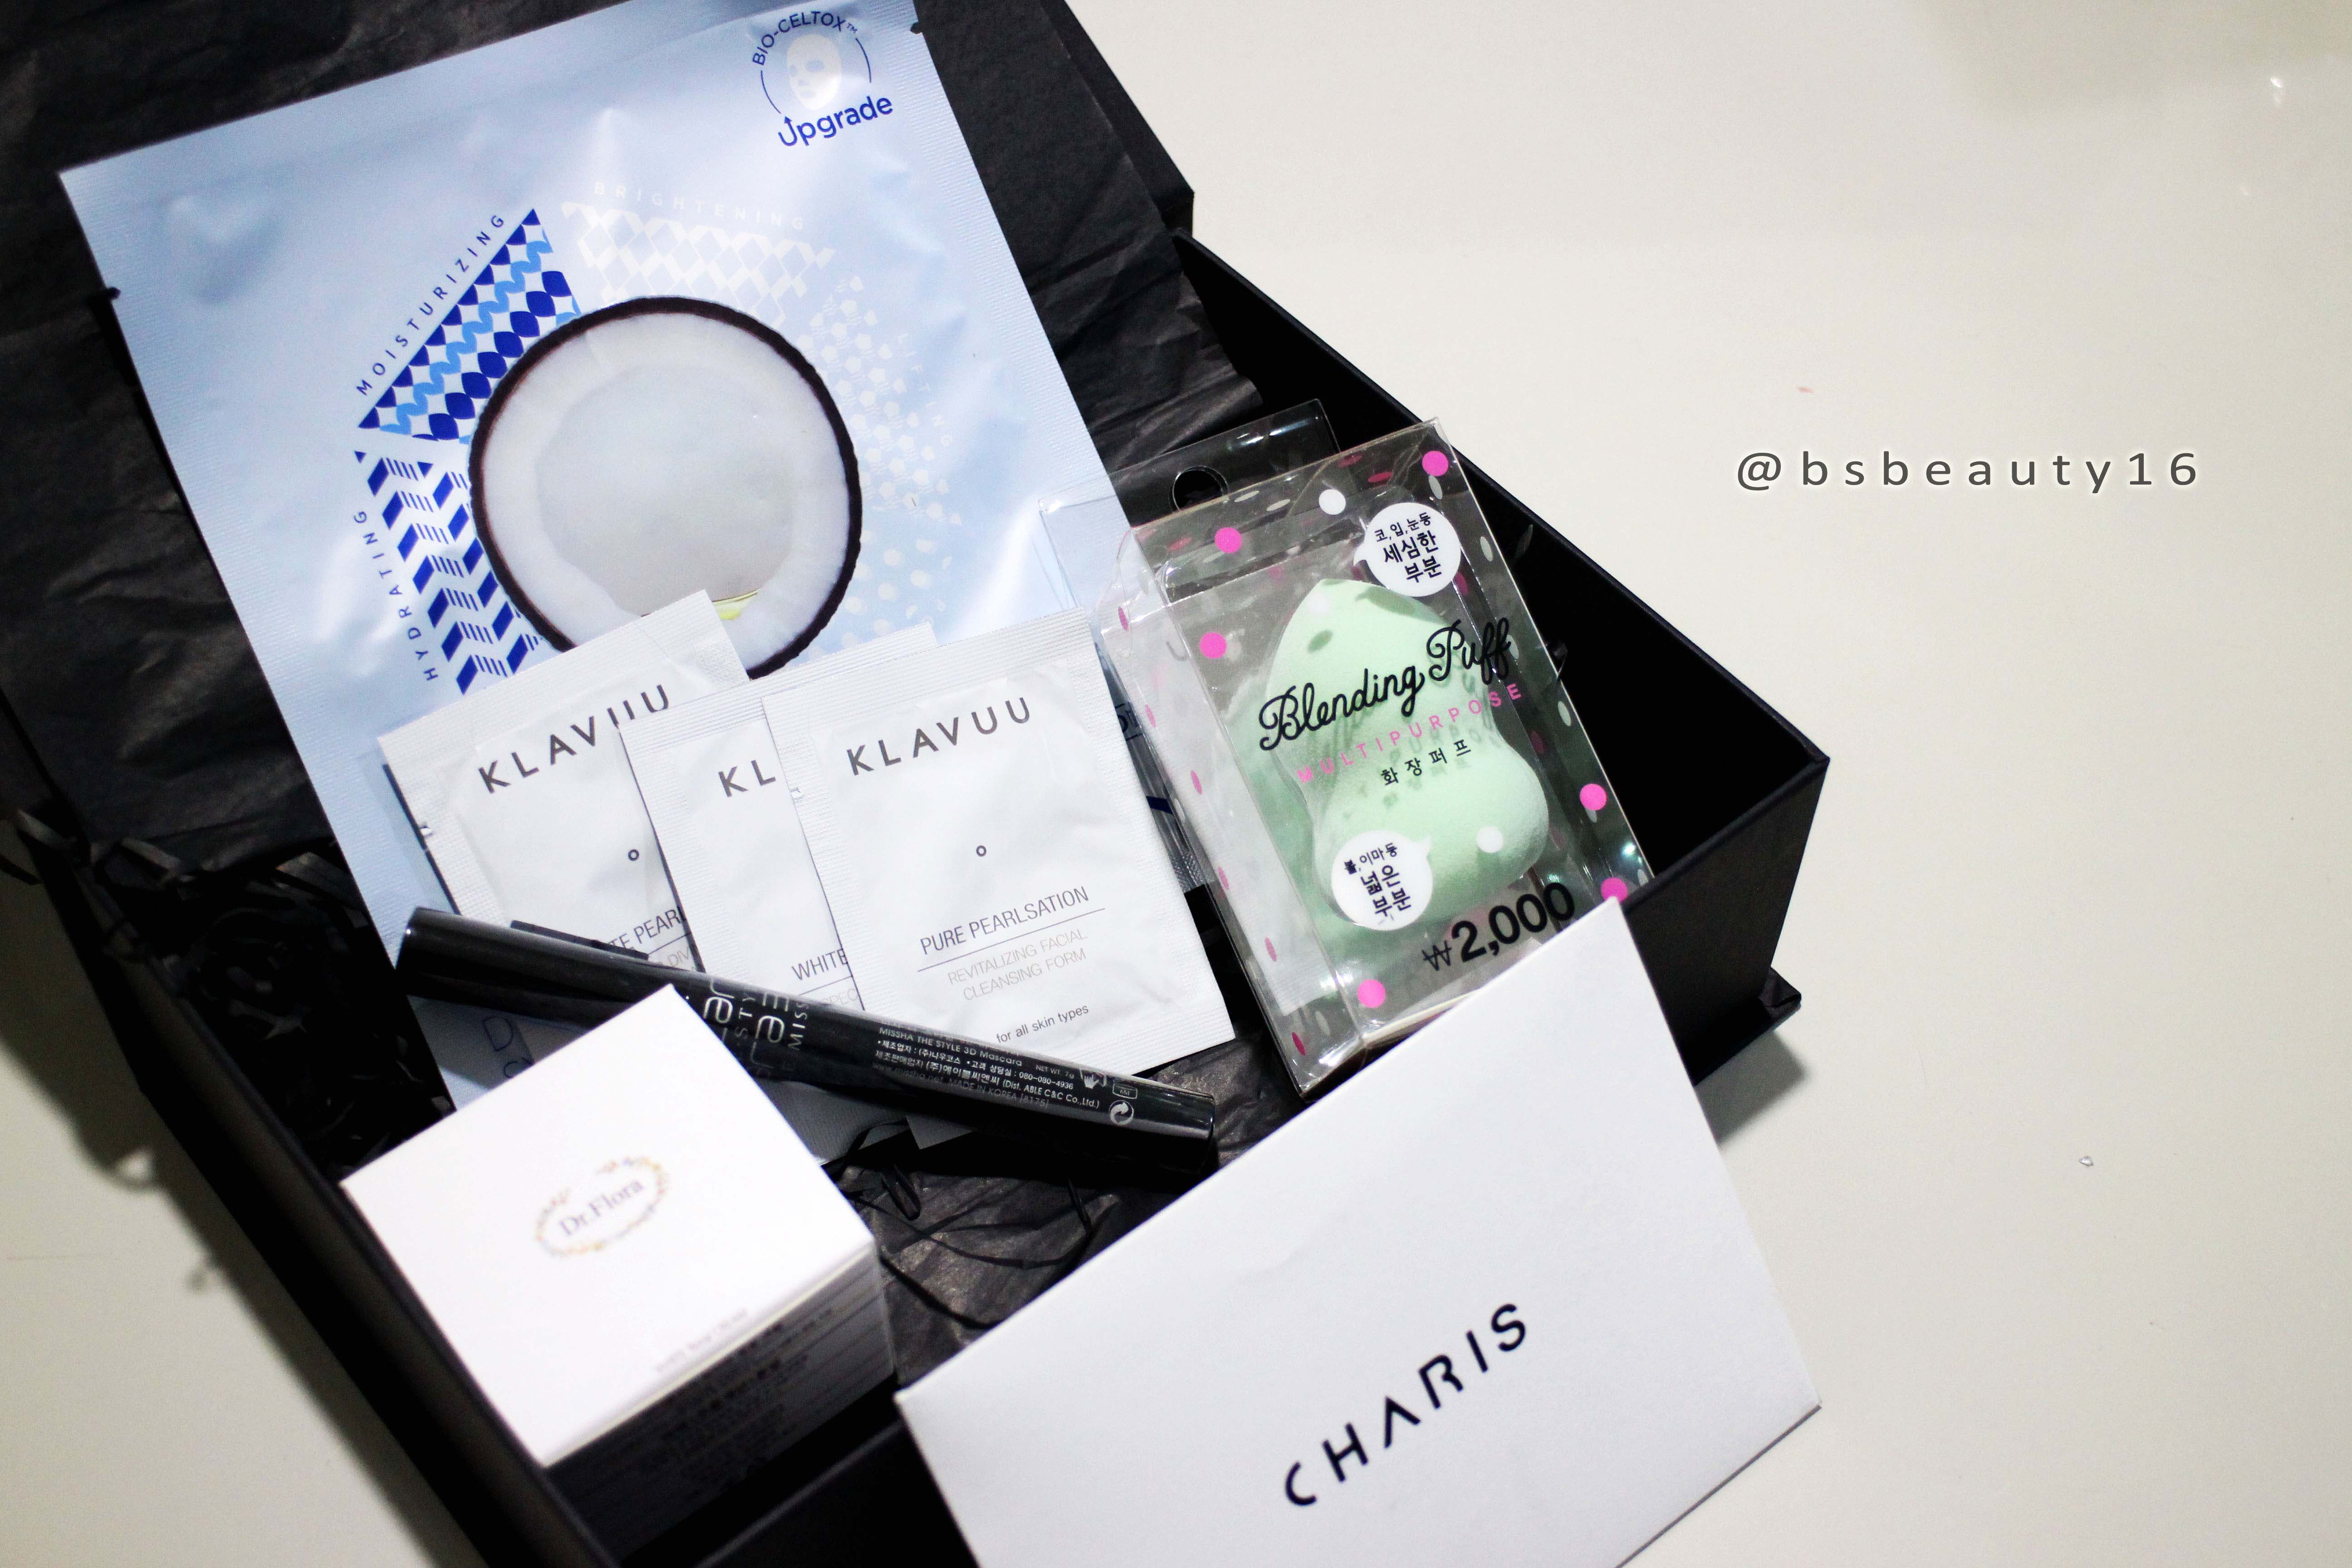 UNBOXING KOREAN BEAUTY BOX [BEAUTY REVIEW]